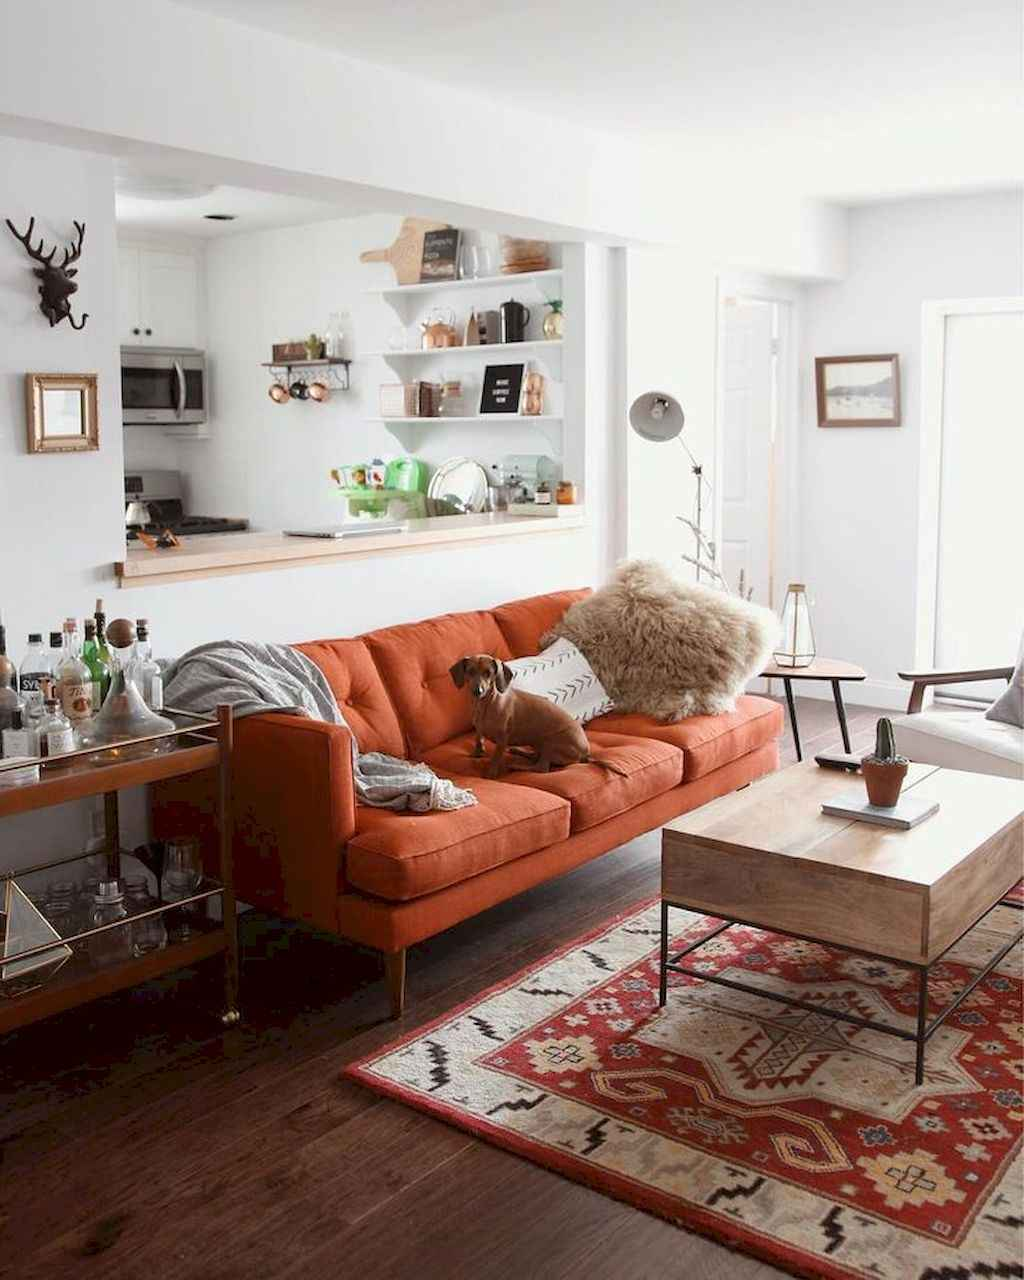 88 Beautiful Apartment Living Room Decor Ideas With Boho Style 166